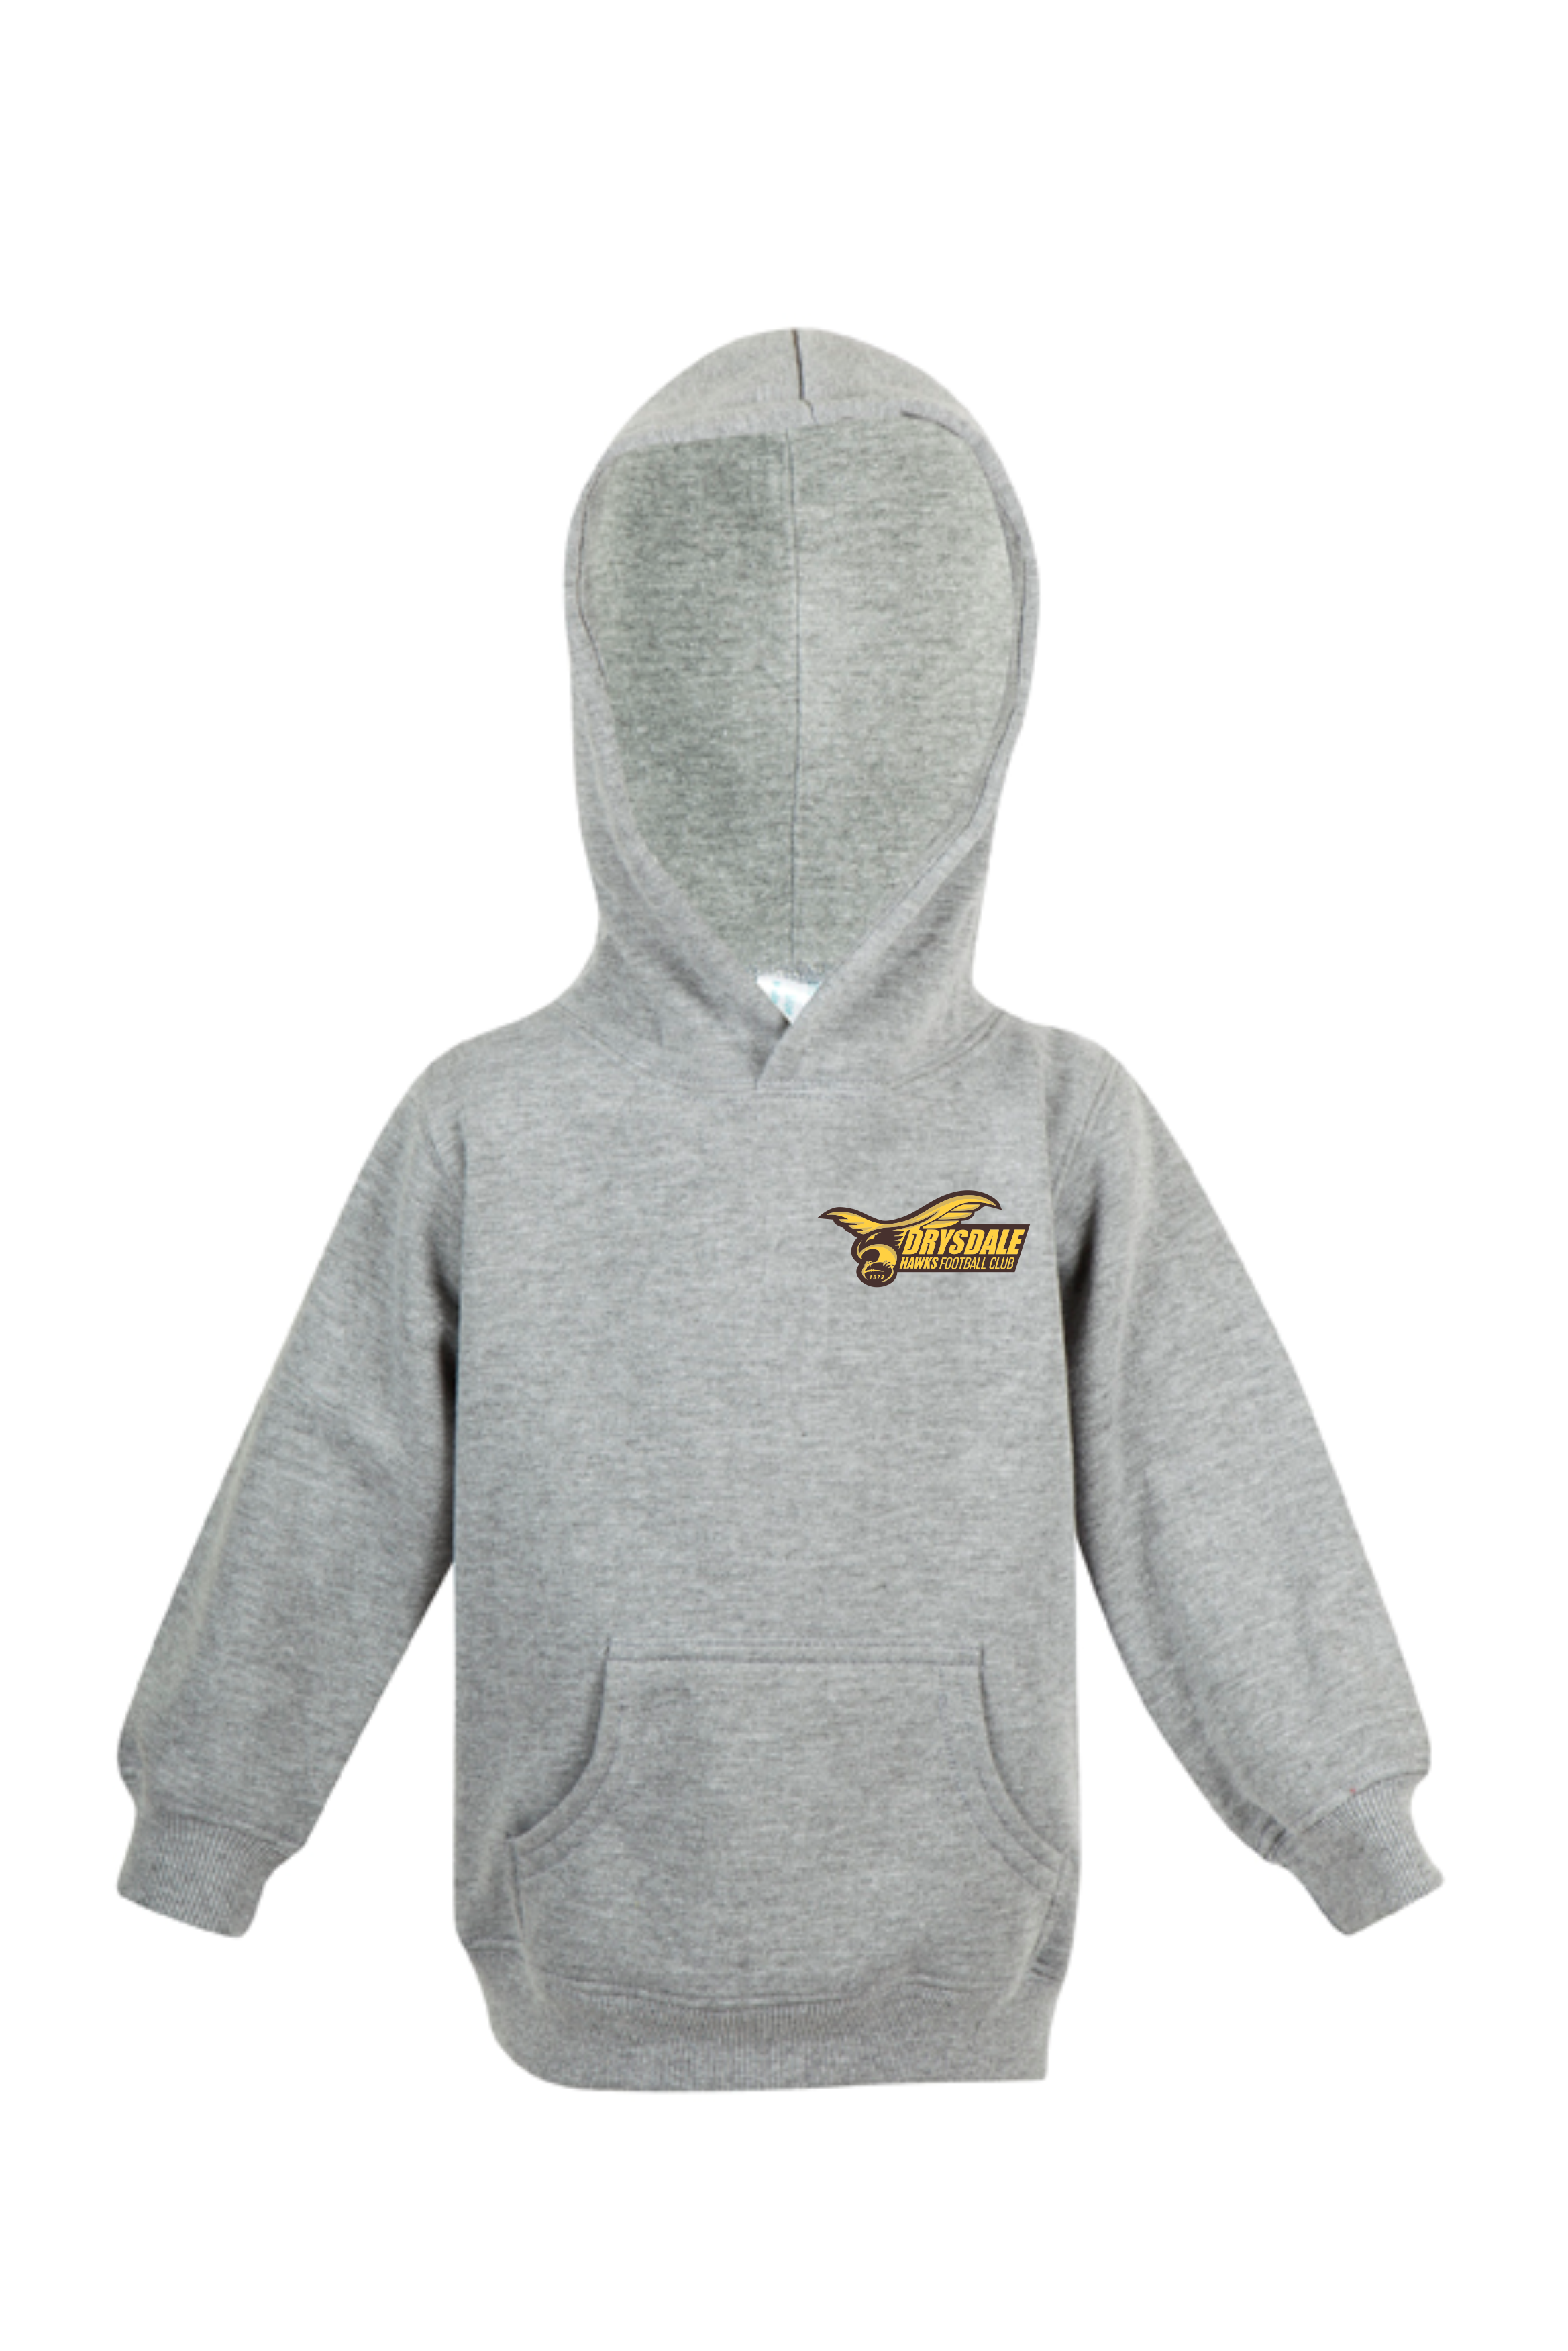 Toddler Club Hoodie (Grey only)